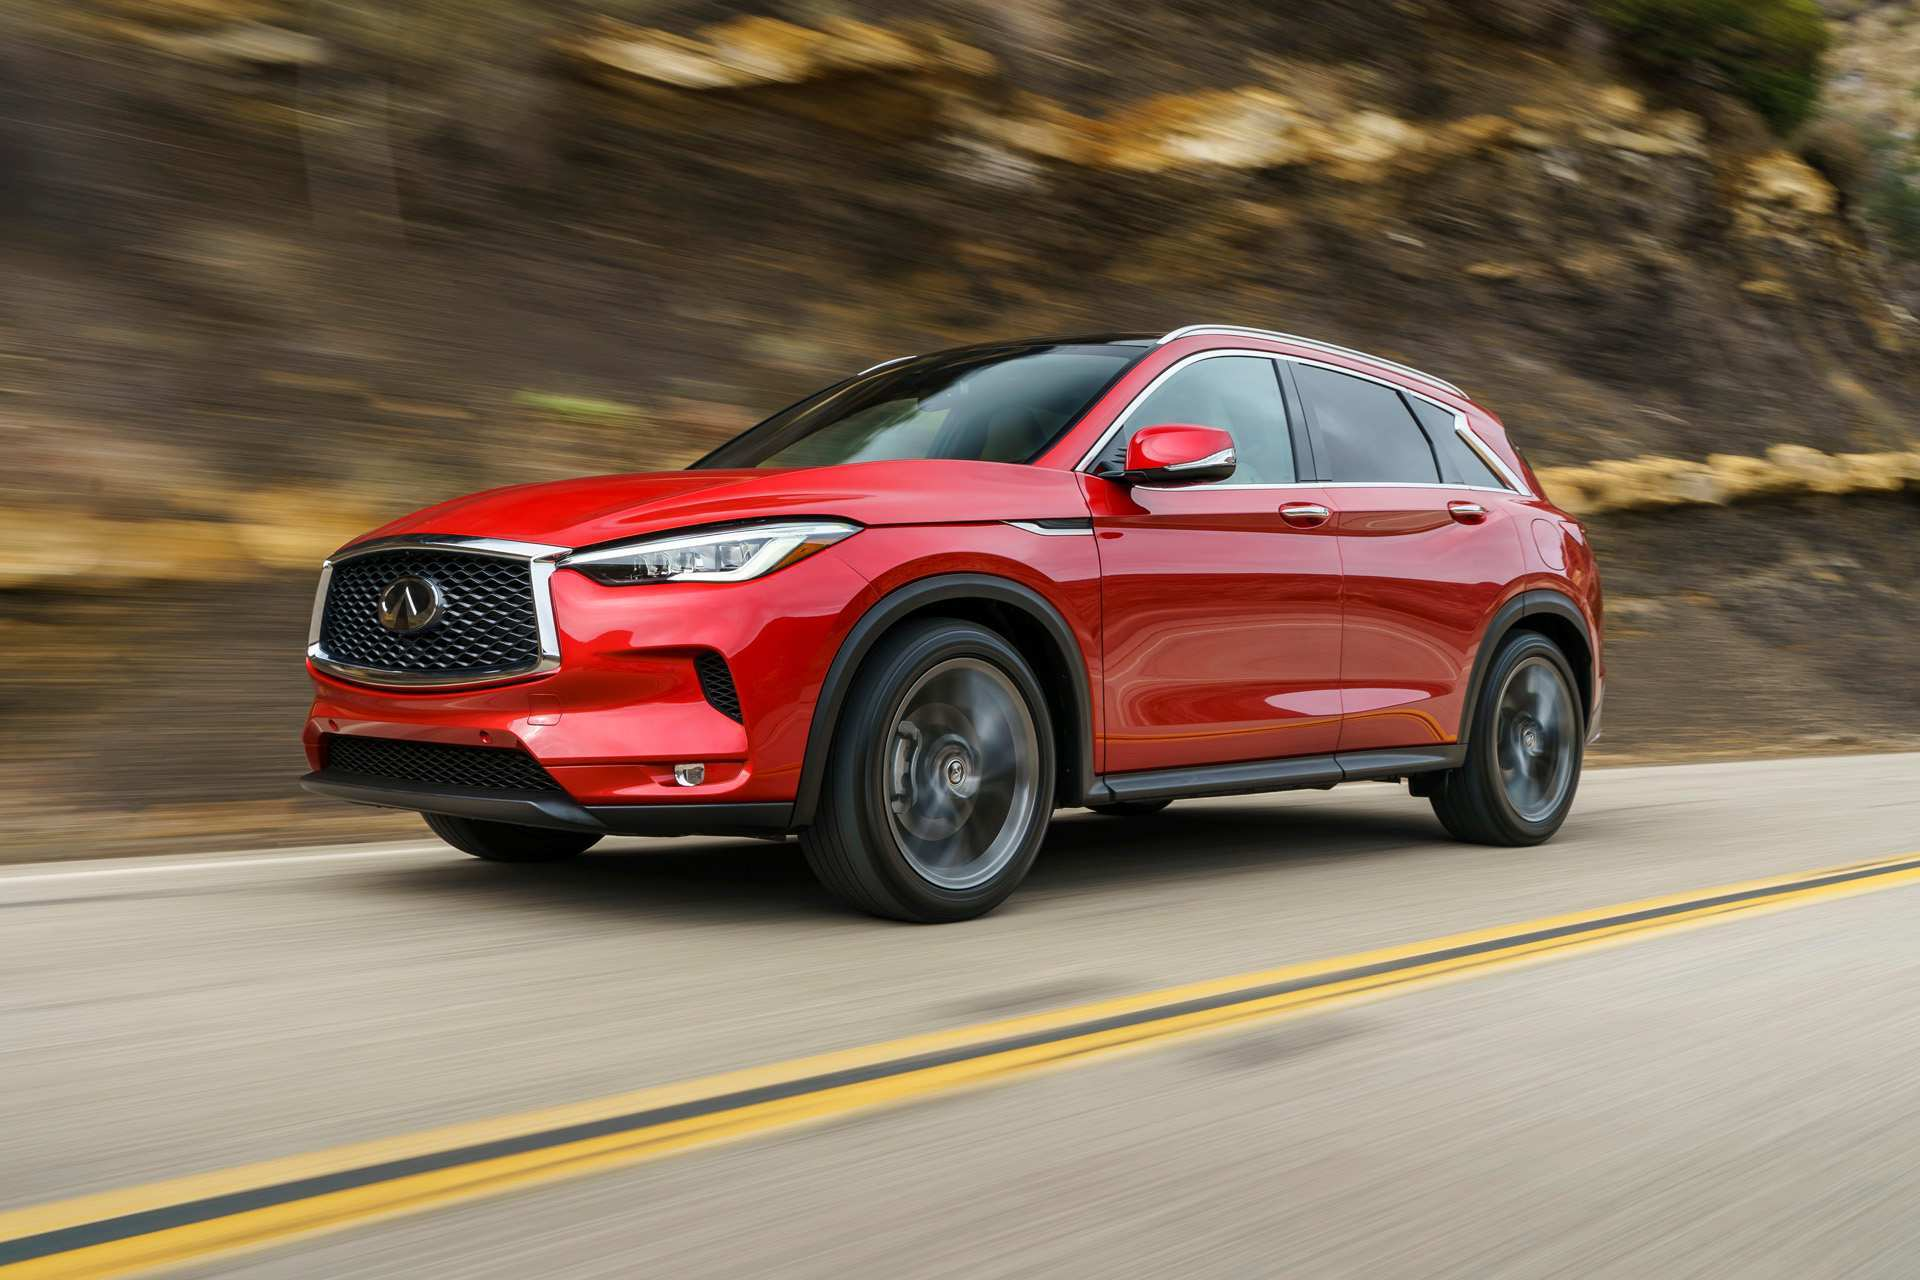 85 New 2019 Infiniti Qx50 Horsepower Picture by 2019 Infiniti Qx50 Horsepower